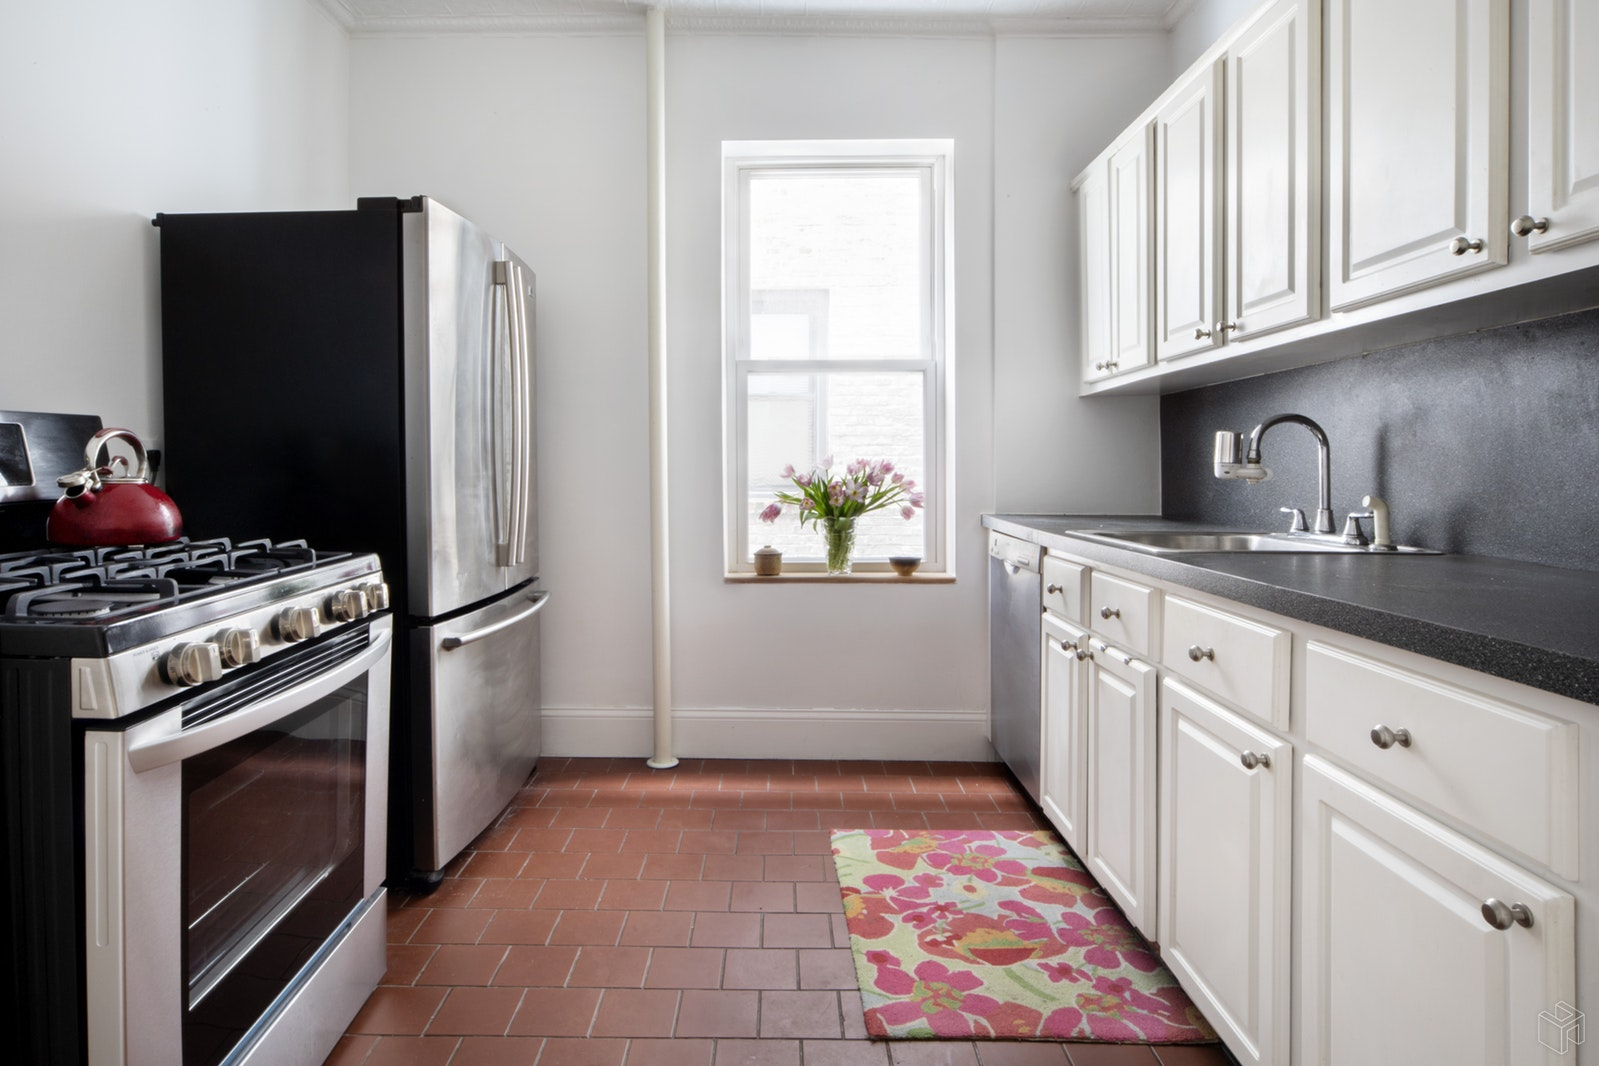 404 6th Avenue 2r, Park Slope, Brooklyn, NY, 11215, $1,199,000, Property For Sale, Halstead Real Estate, Photo 4